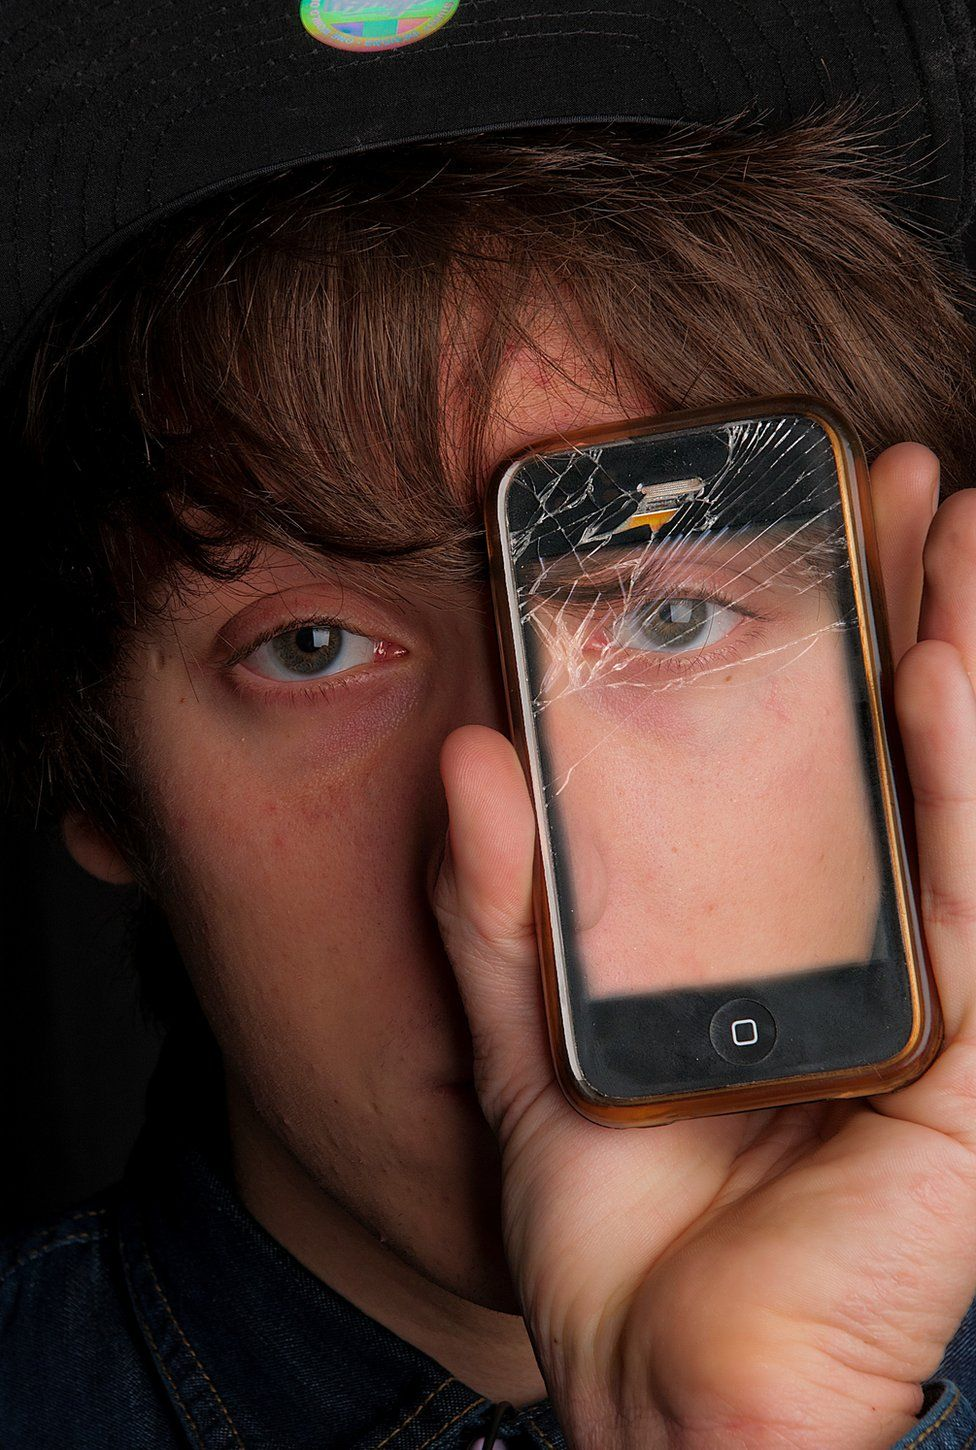 Person holding mobile phone in front of their face